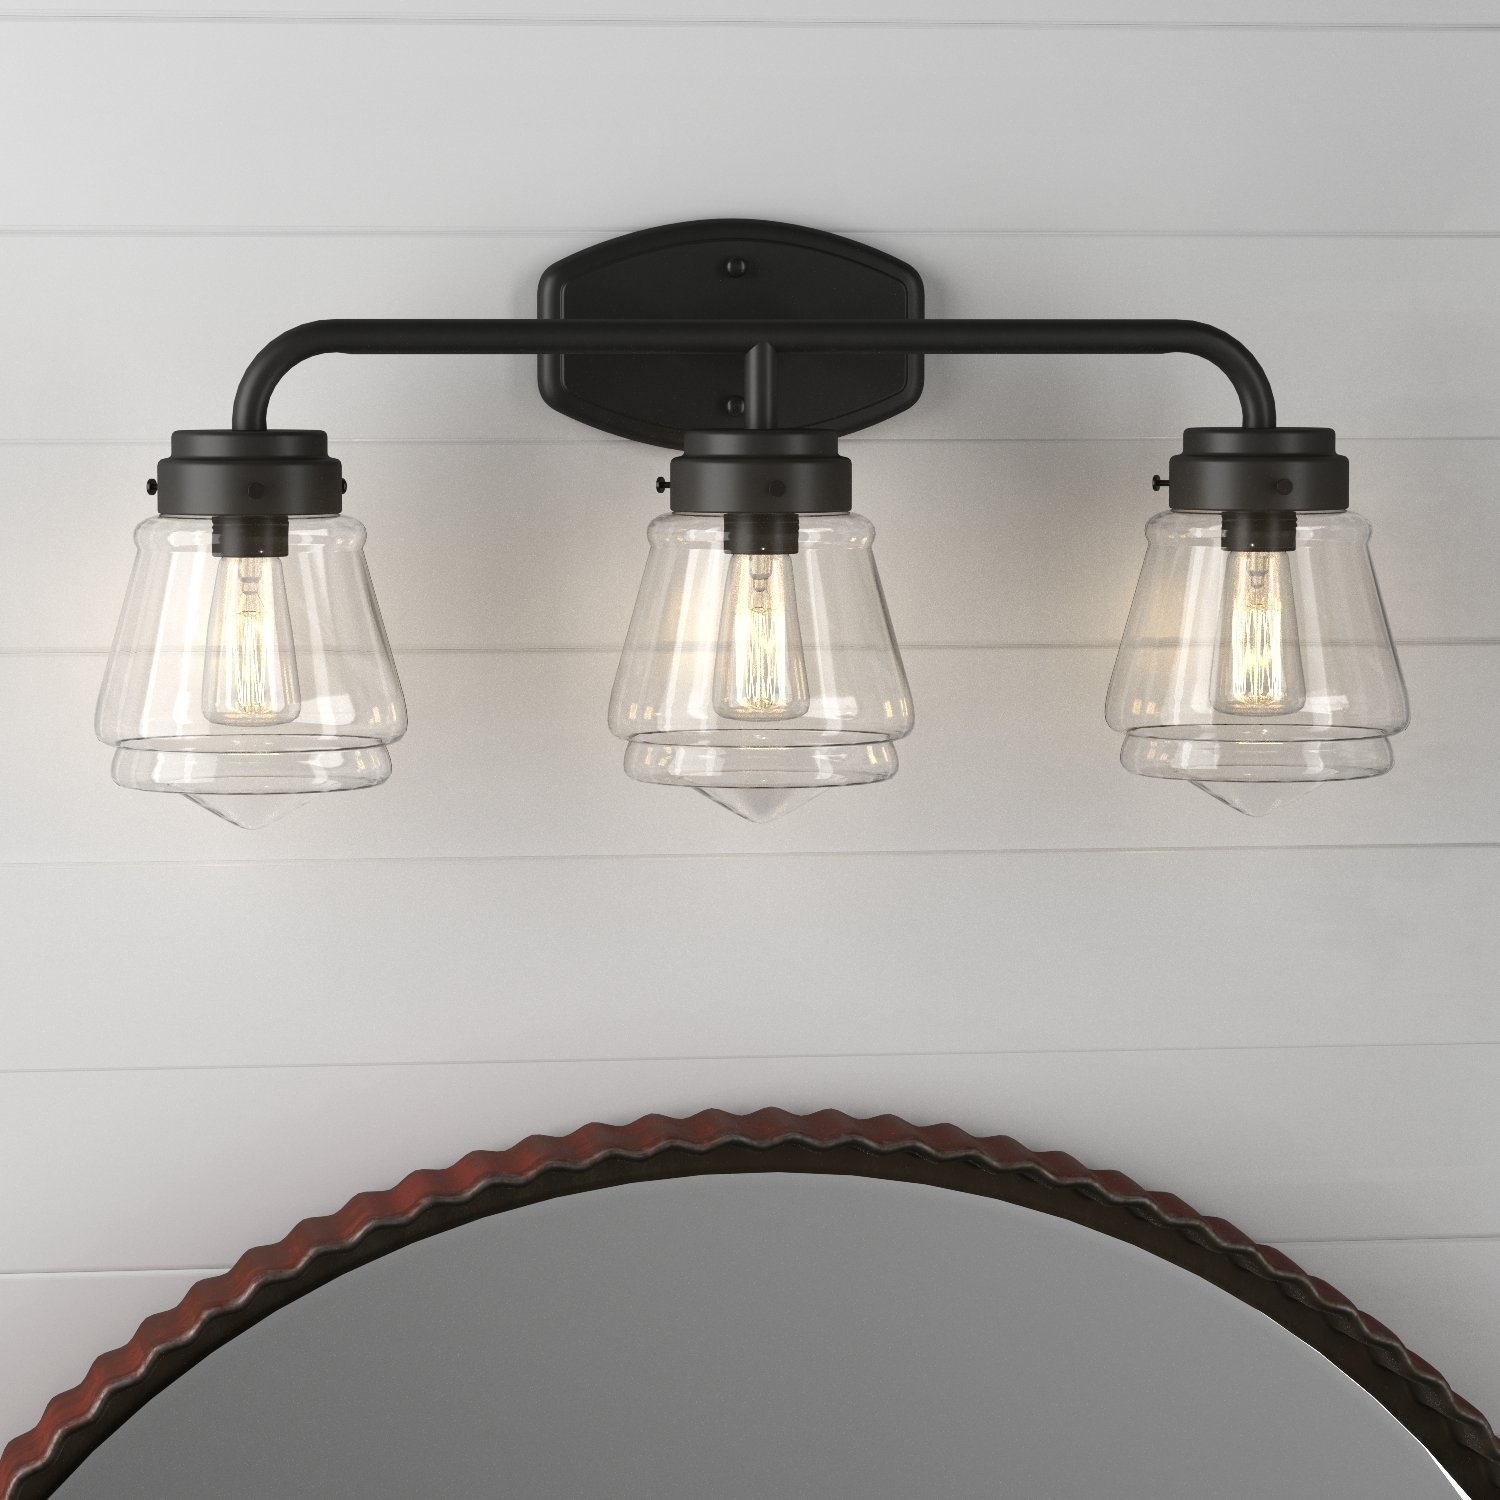 Stone & Beam Vintage 3-Light Vanity Fixture, 11.5''H, With Bulb, Matte Black with Glass Shade by Stone & Beam (Image #3)